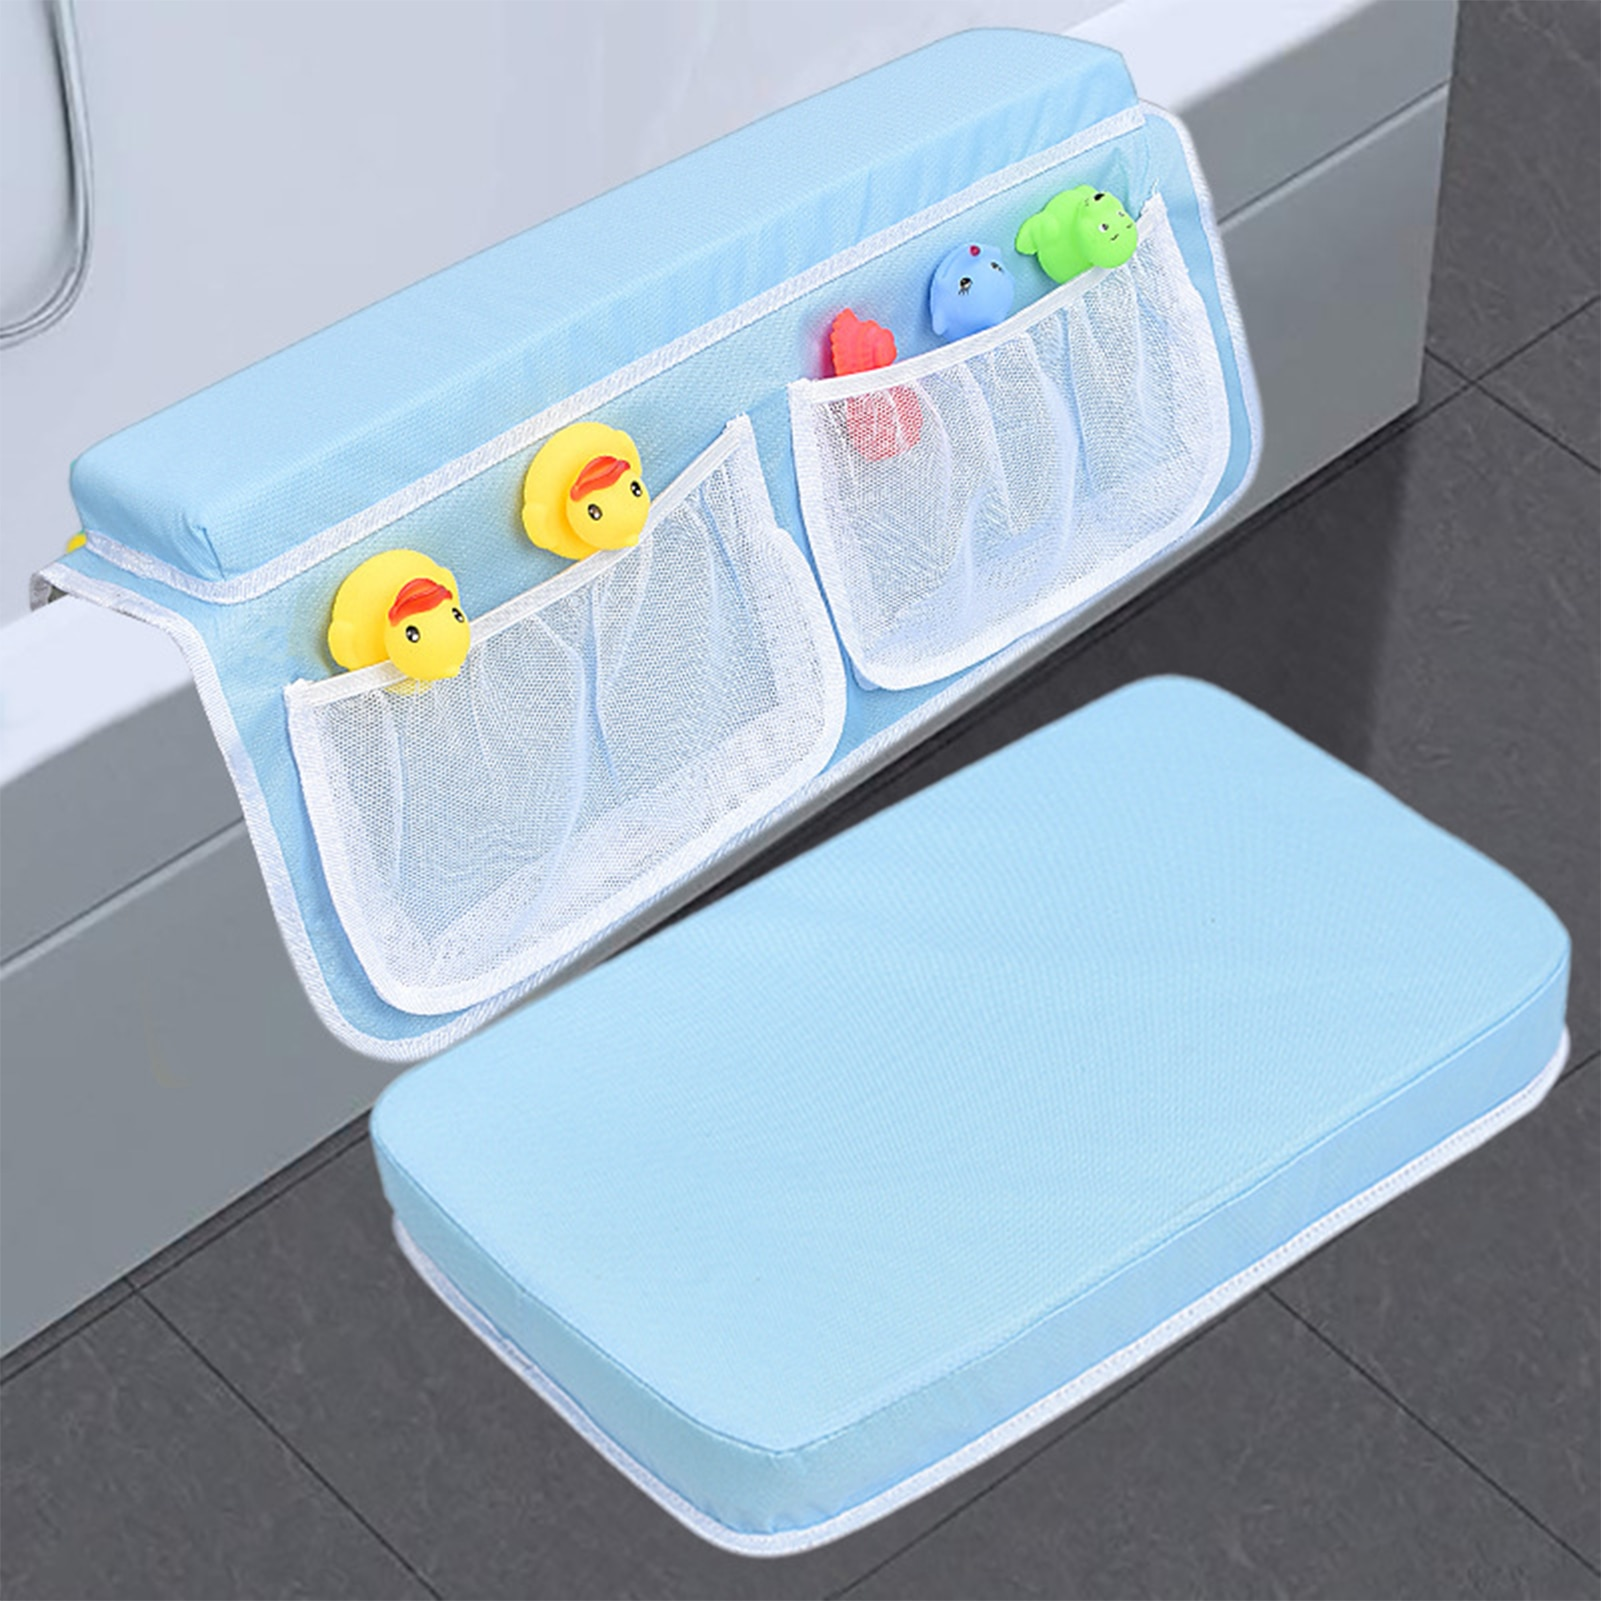 Bath Kneeler And Elbow Rest Pad Set Kneeling Mat With 4 Pocket Elbow Saver Mat Nonslip Mat Waterproof And Quick Drying